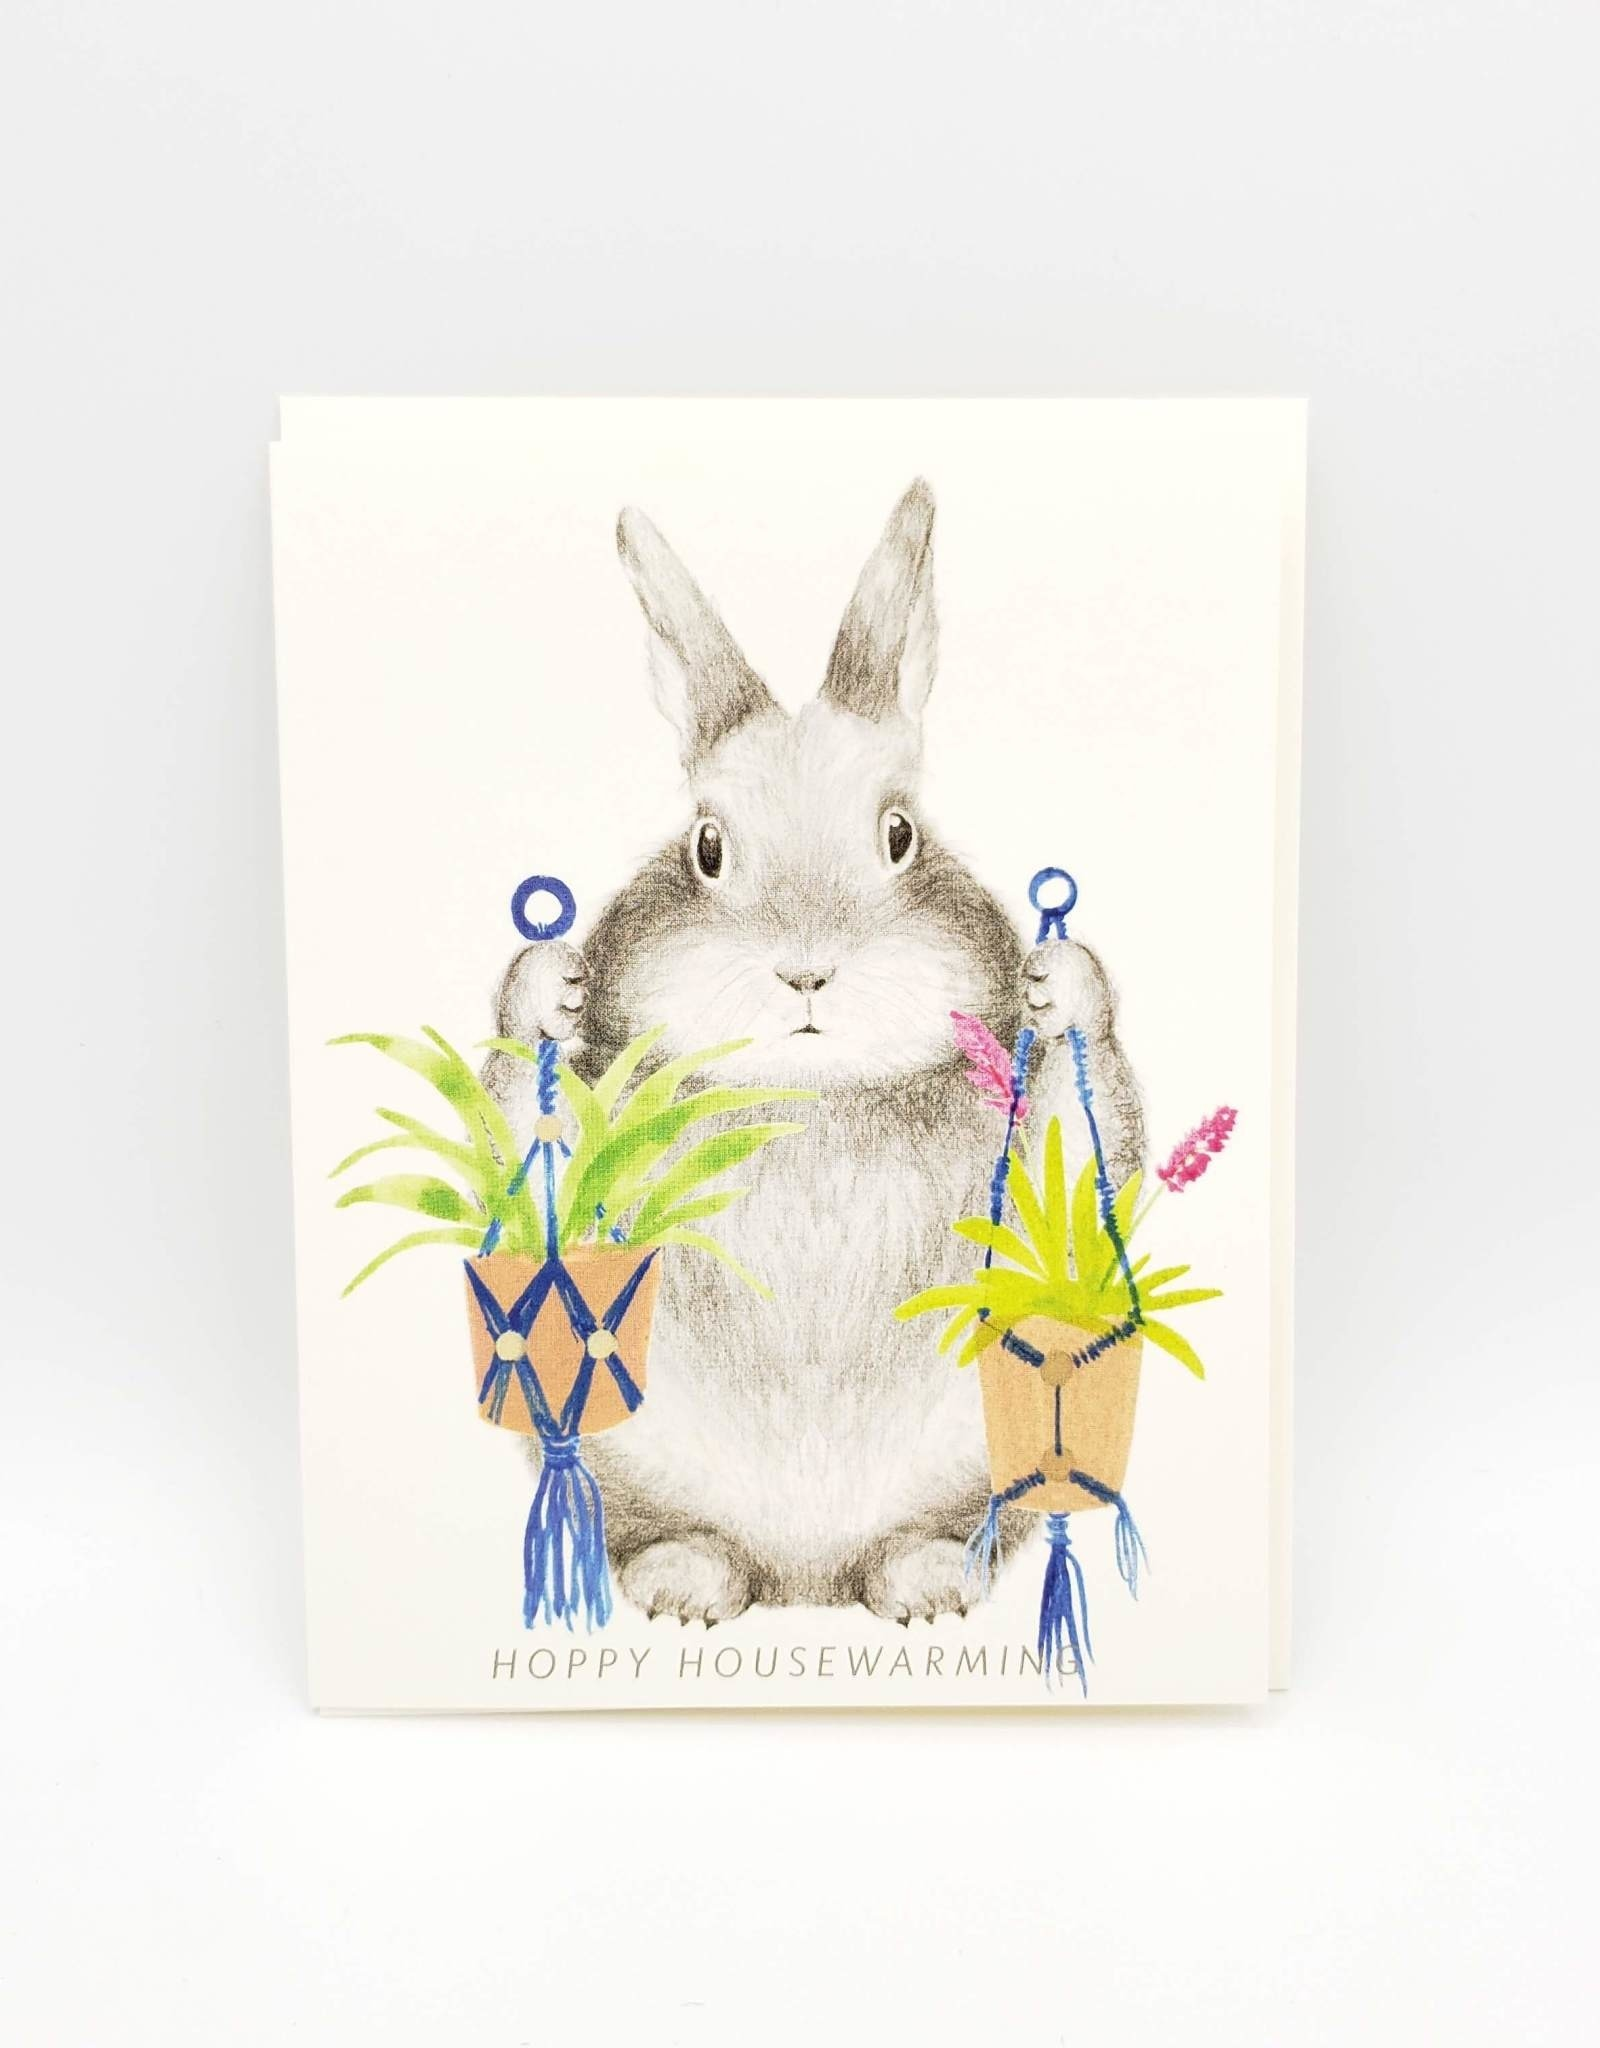 Hoppy Housewarming Greeting Card - Dear Hancock